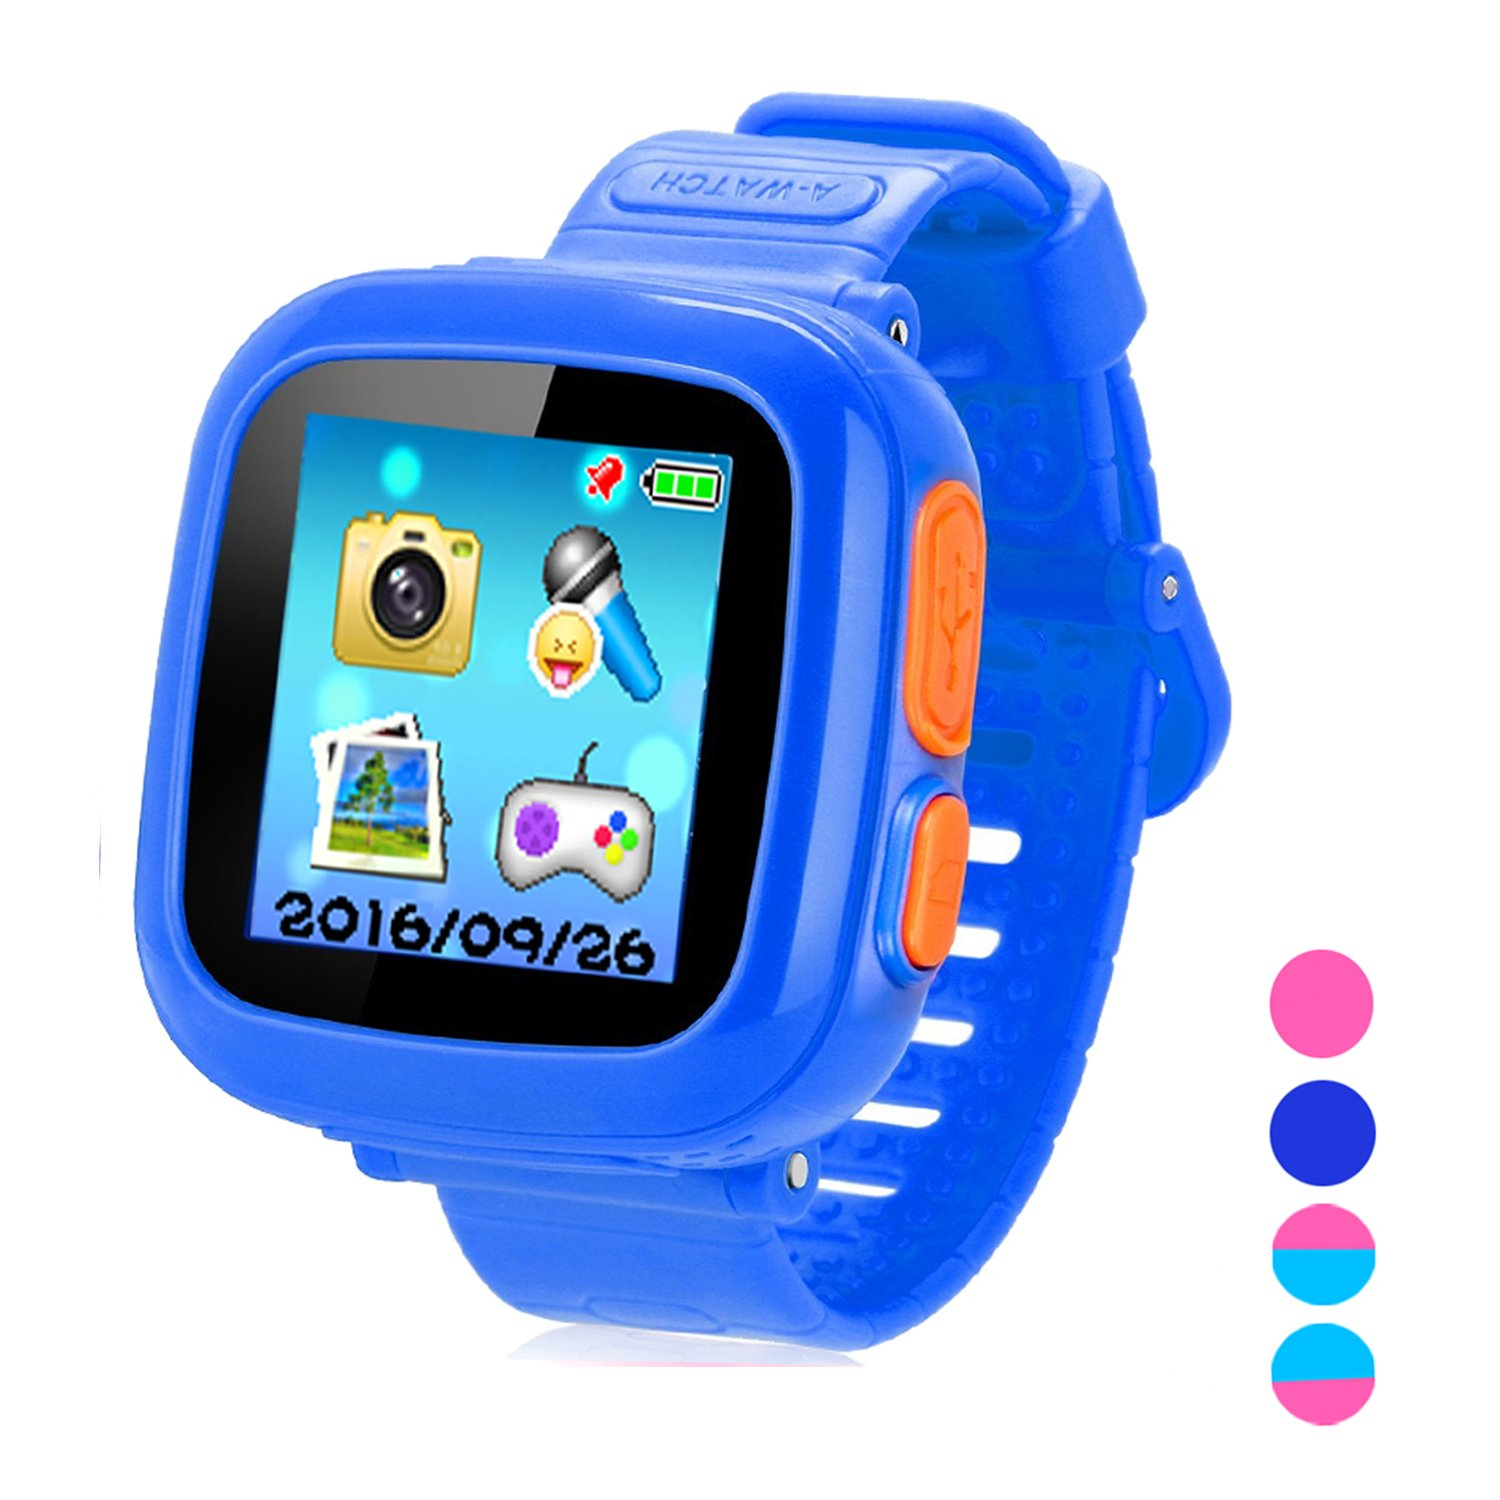 Smart Watch for Kids Girls Boys,Smart Game Watch with Camera Touch Screen Pedometer,Kids Smart watch Perfect Holiday Birthday Toys Gifts (Dark Blue)